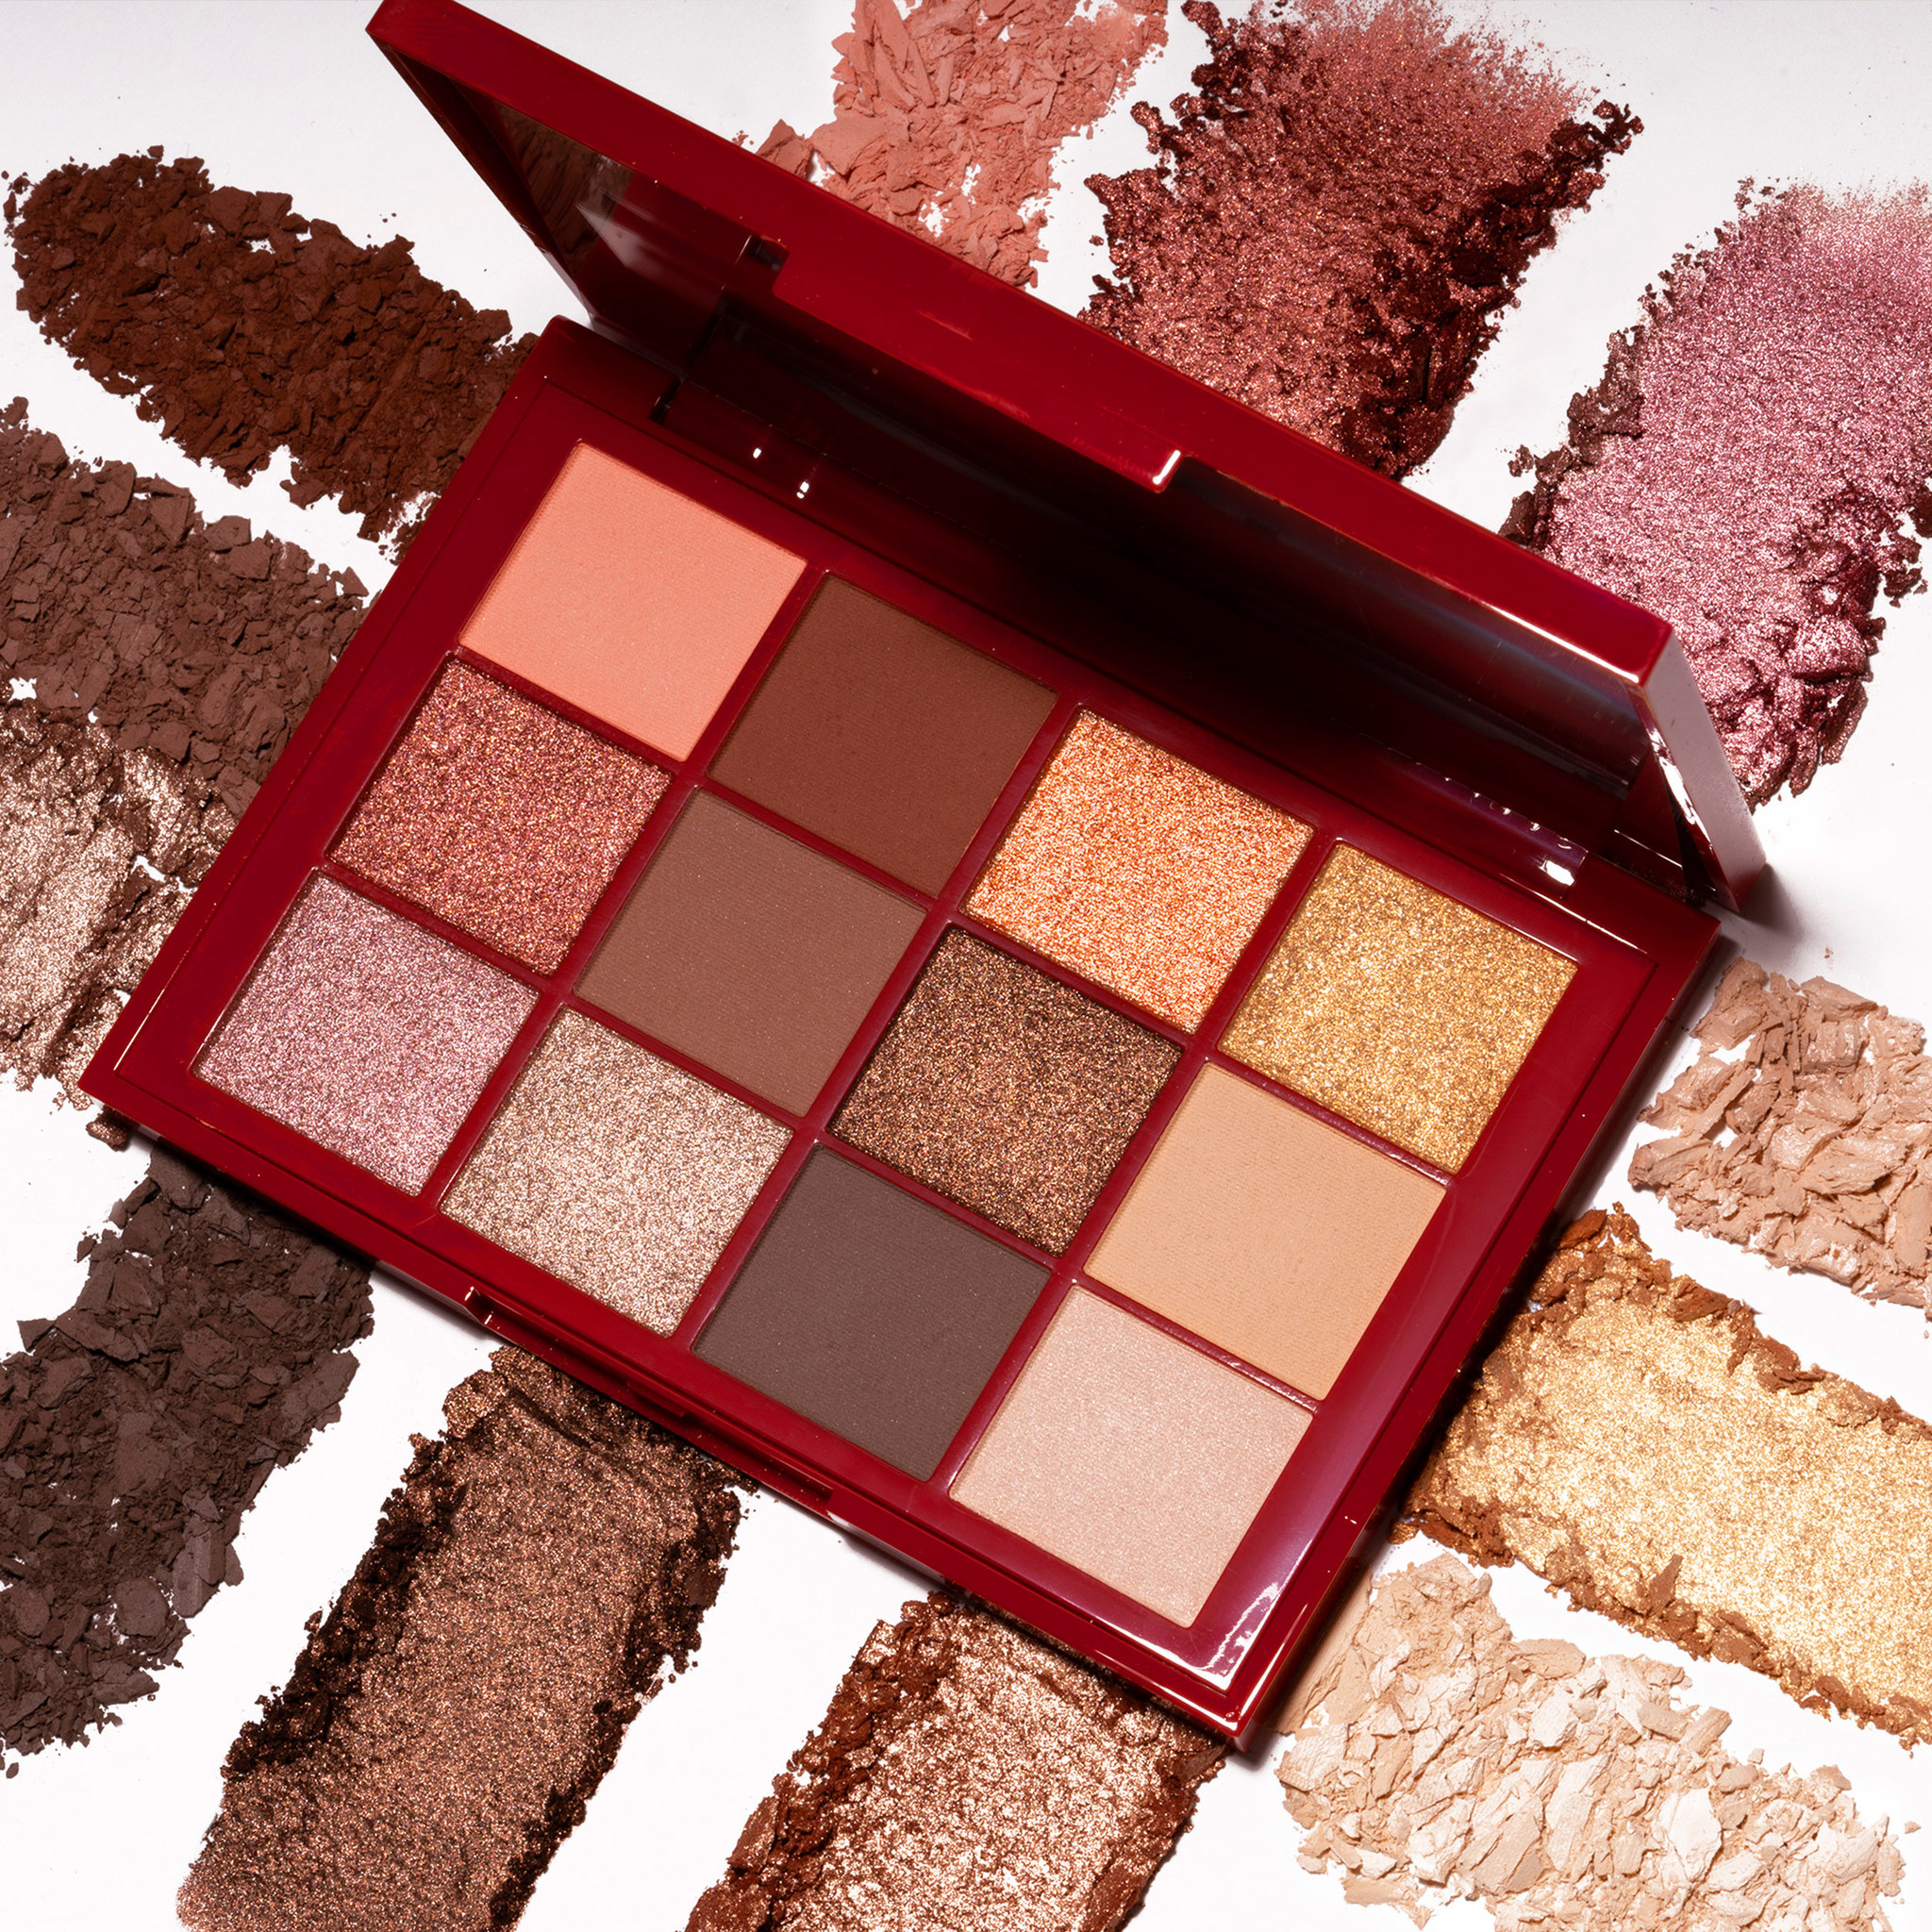 Linda Hallberg The New Golden 20's Palette